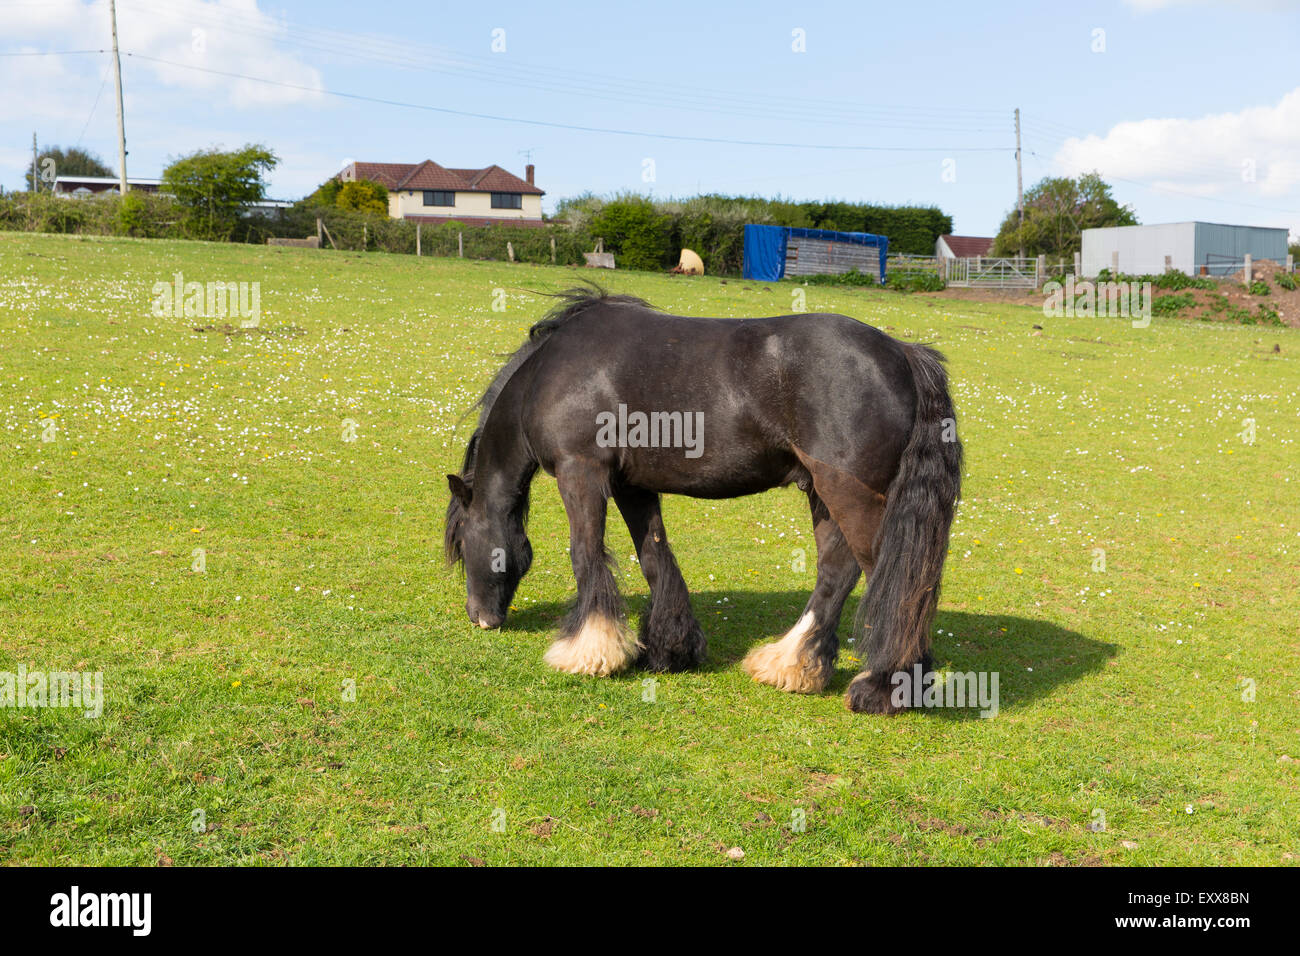 Gypsy traveller pony with long tail and hairy feet - Stock Image